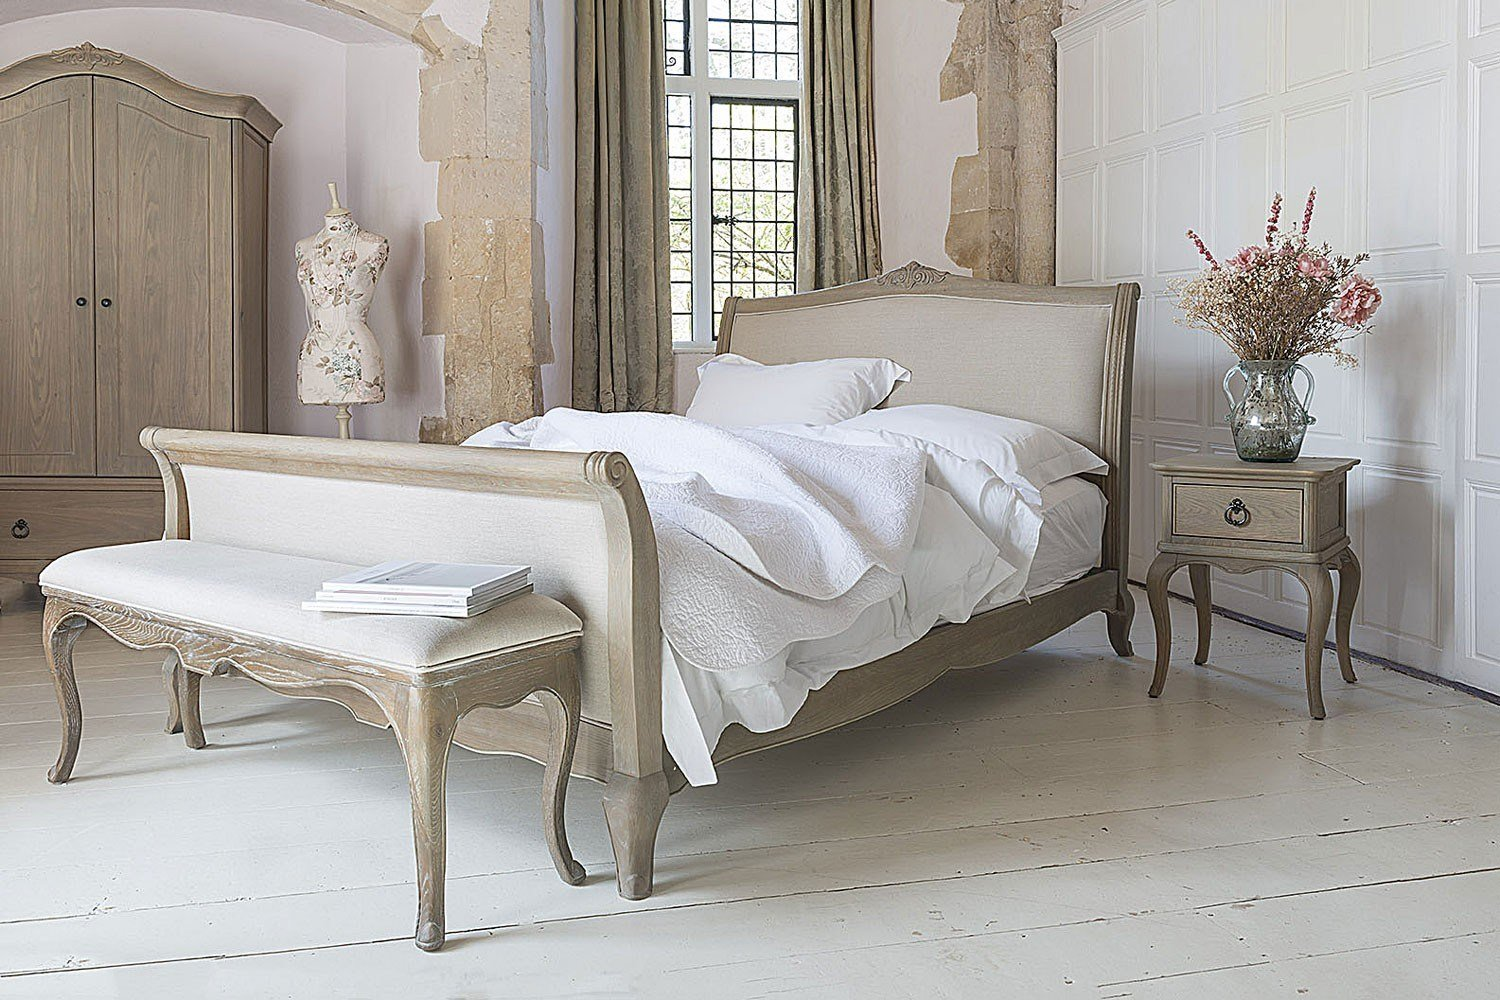 Best Camille French Style Upholstered Bed Crown French Furniture With Pictures